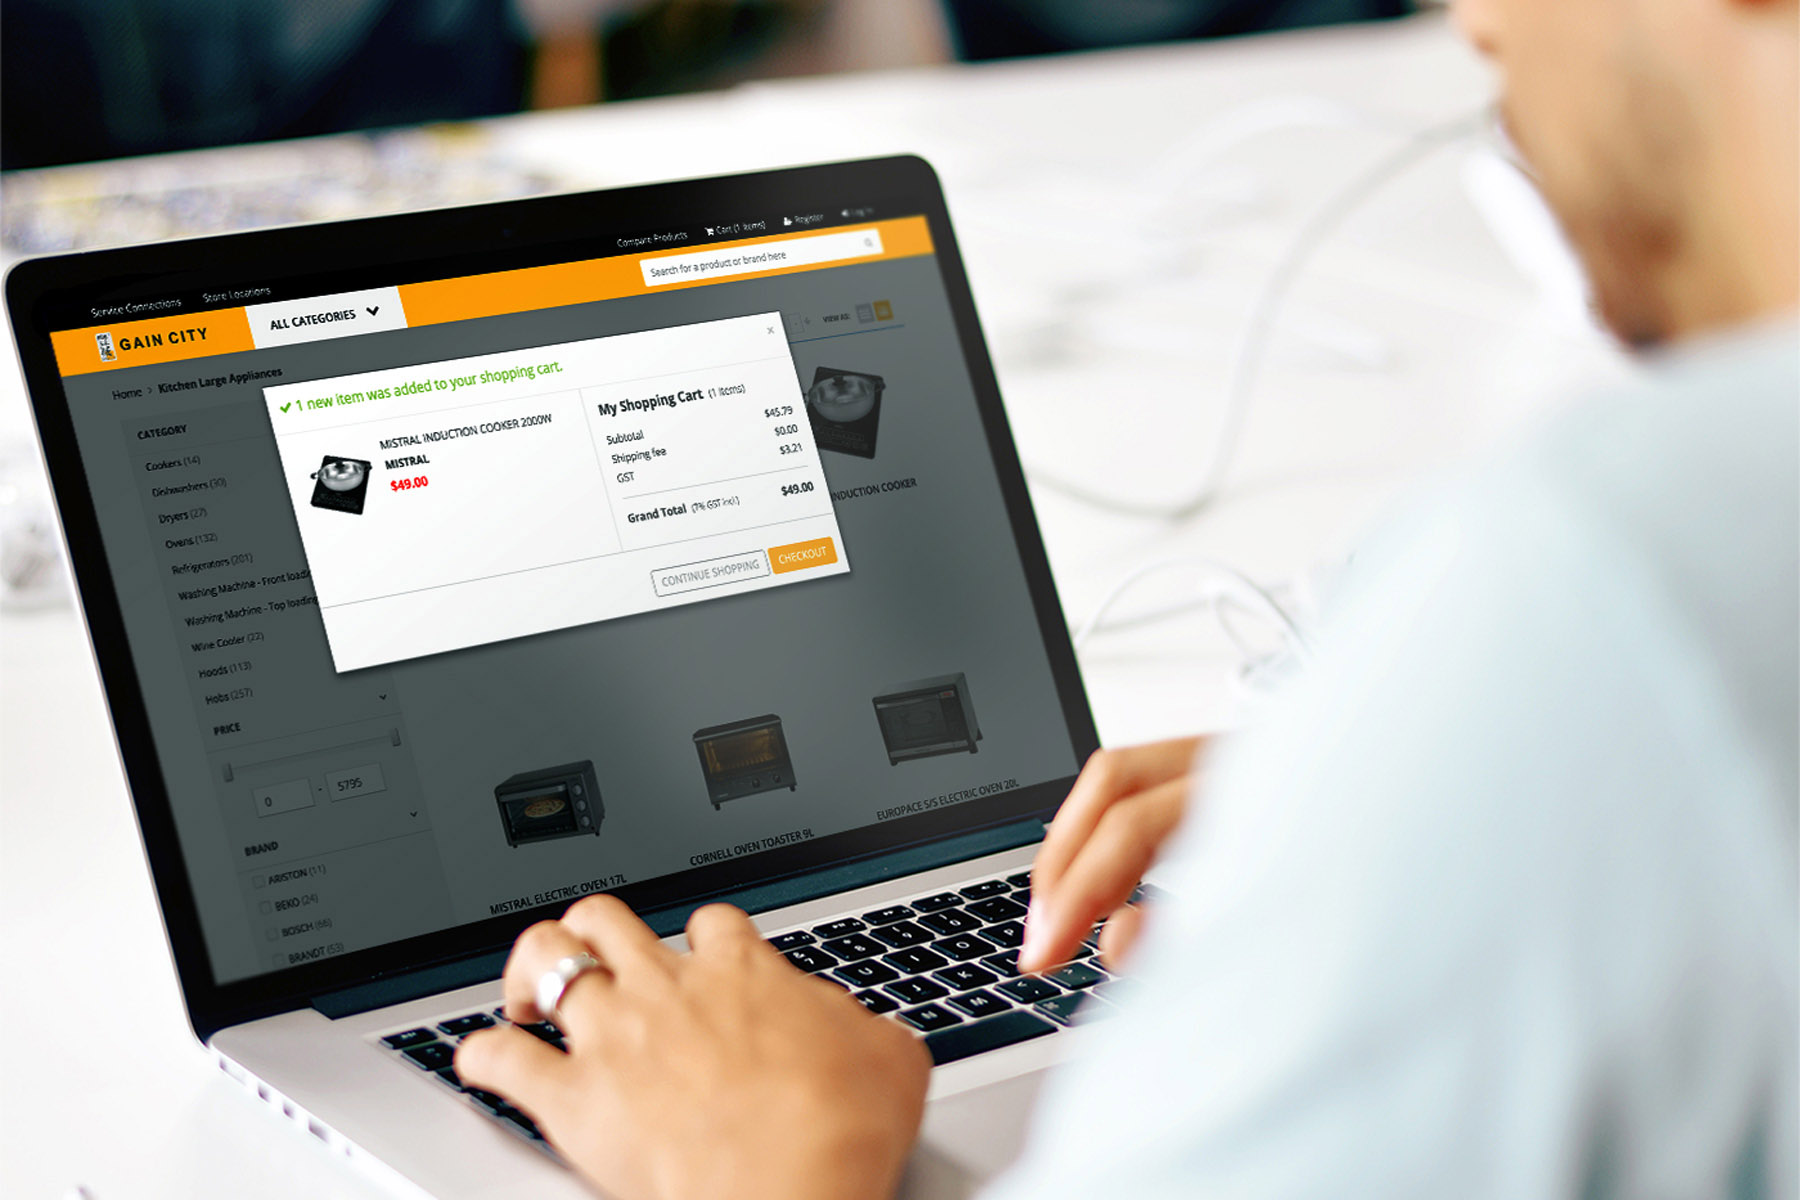 Magento Ecommerce Website Design Case Study GainCity